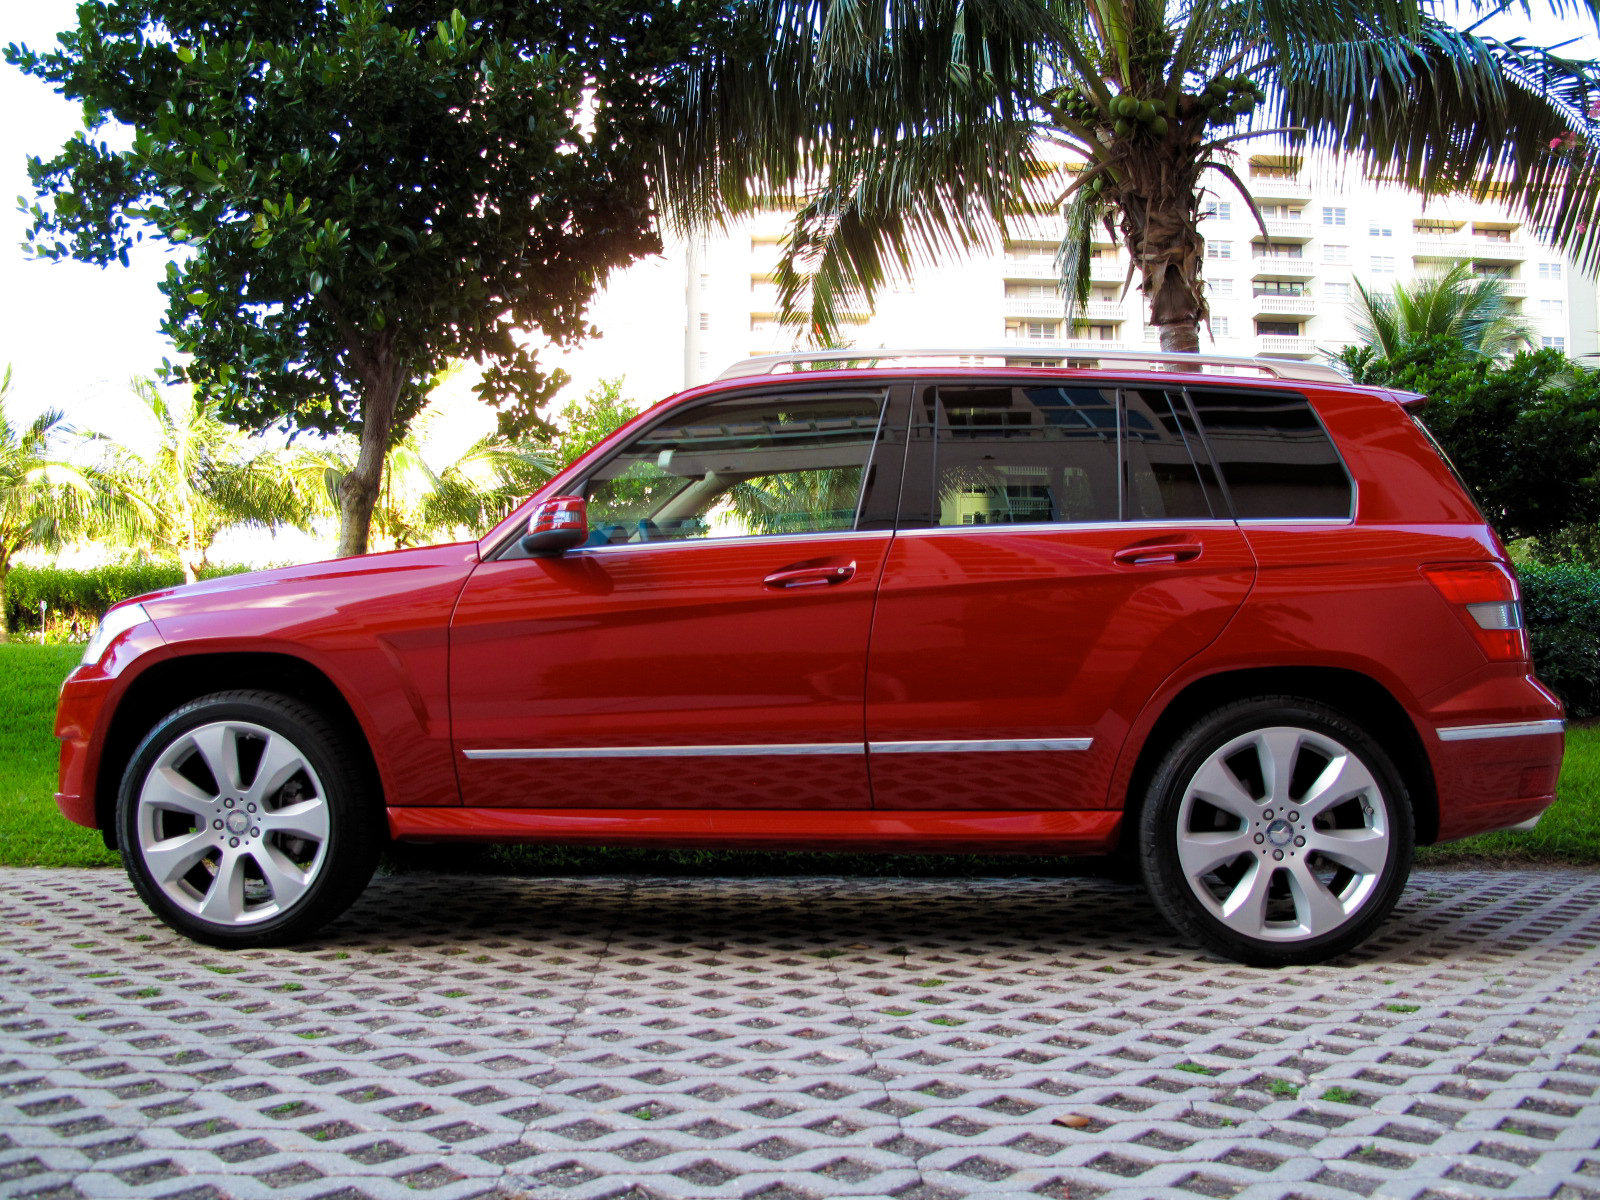 2010 mercedes benz glk 350 picture 344504 car review. Black Bedroom Furniture Sets. Home Design Ideas